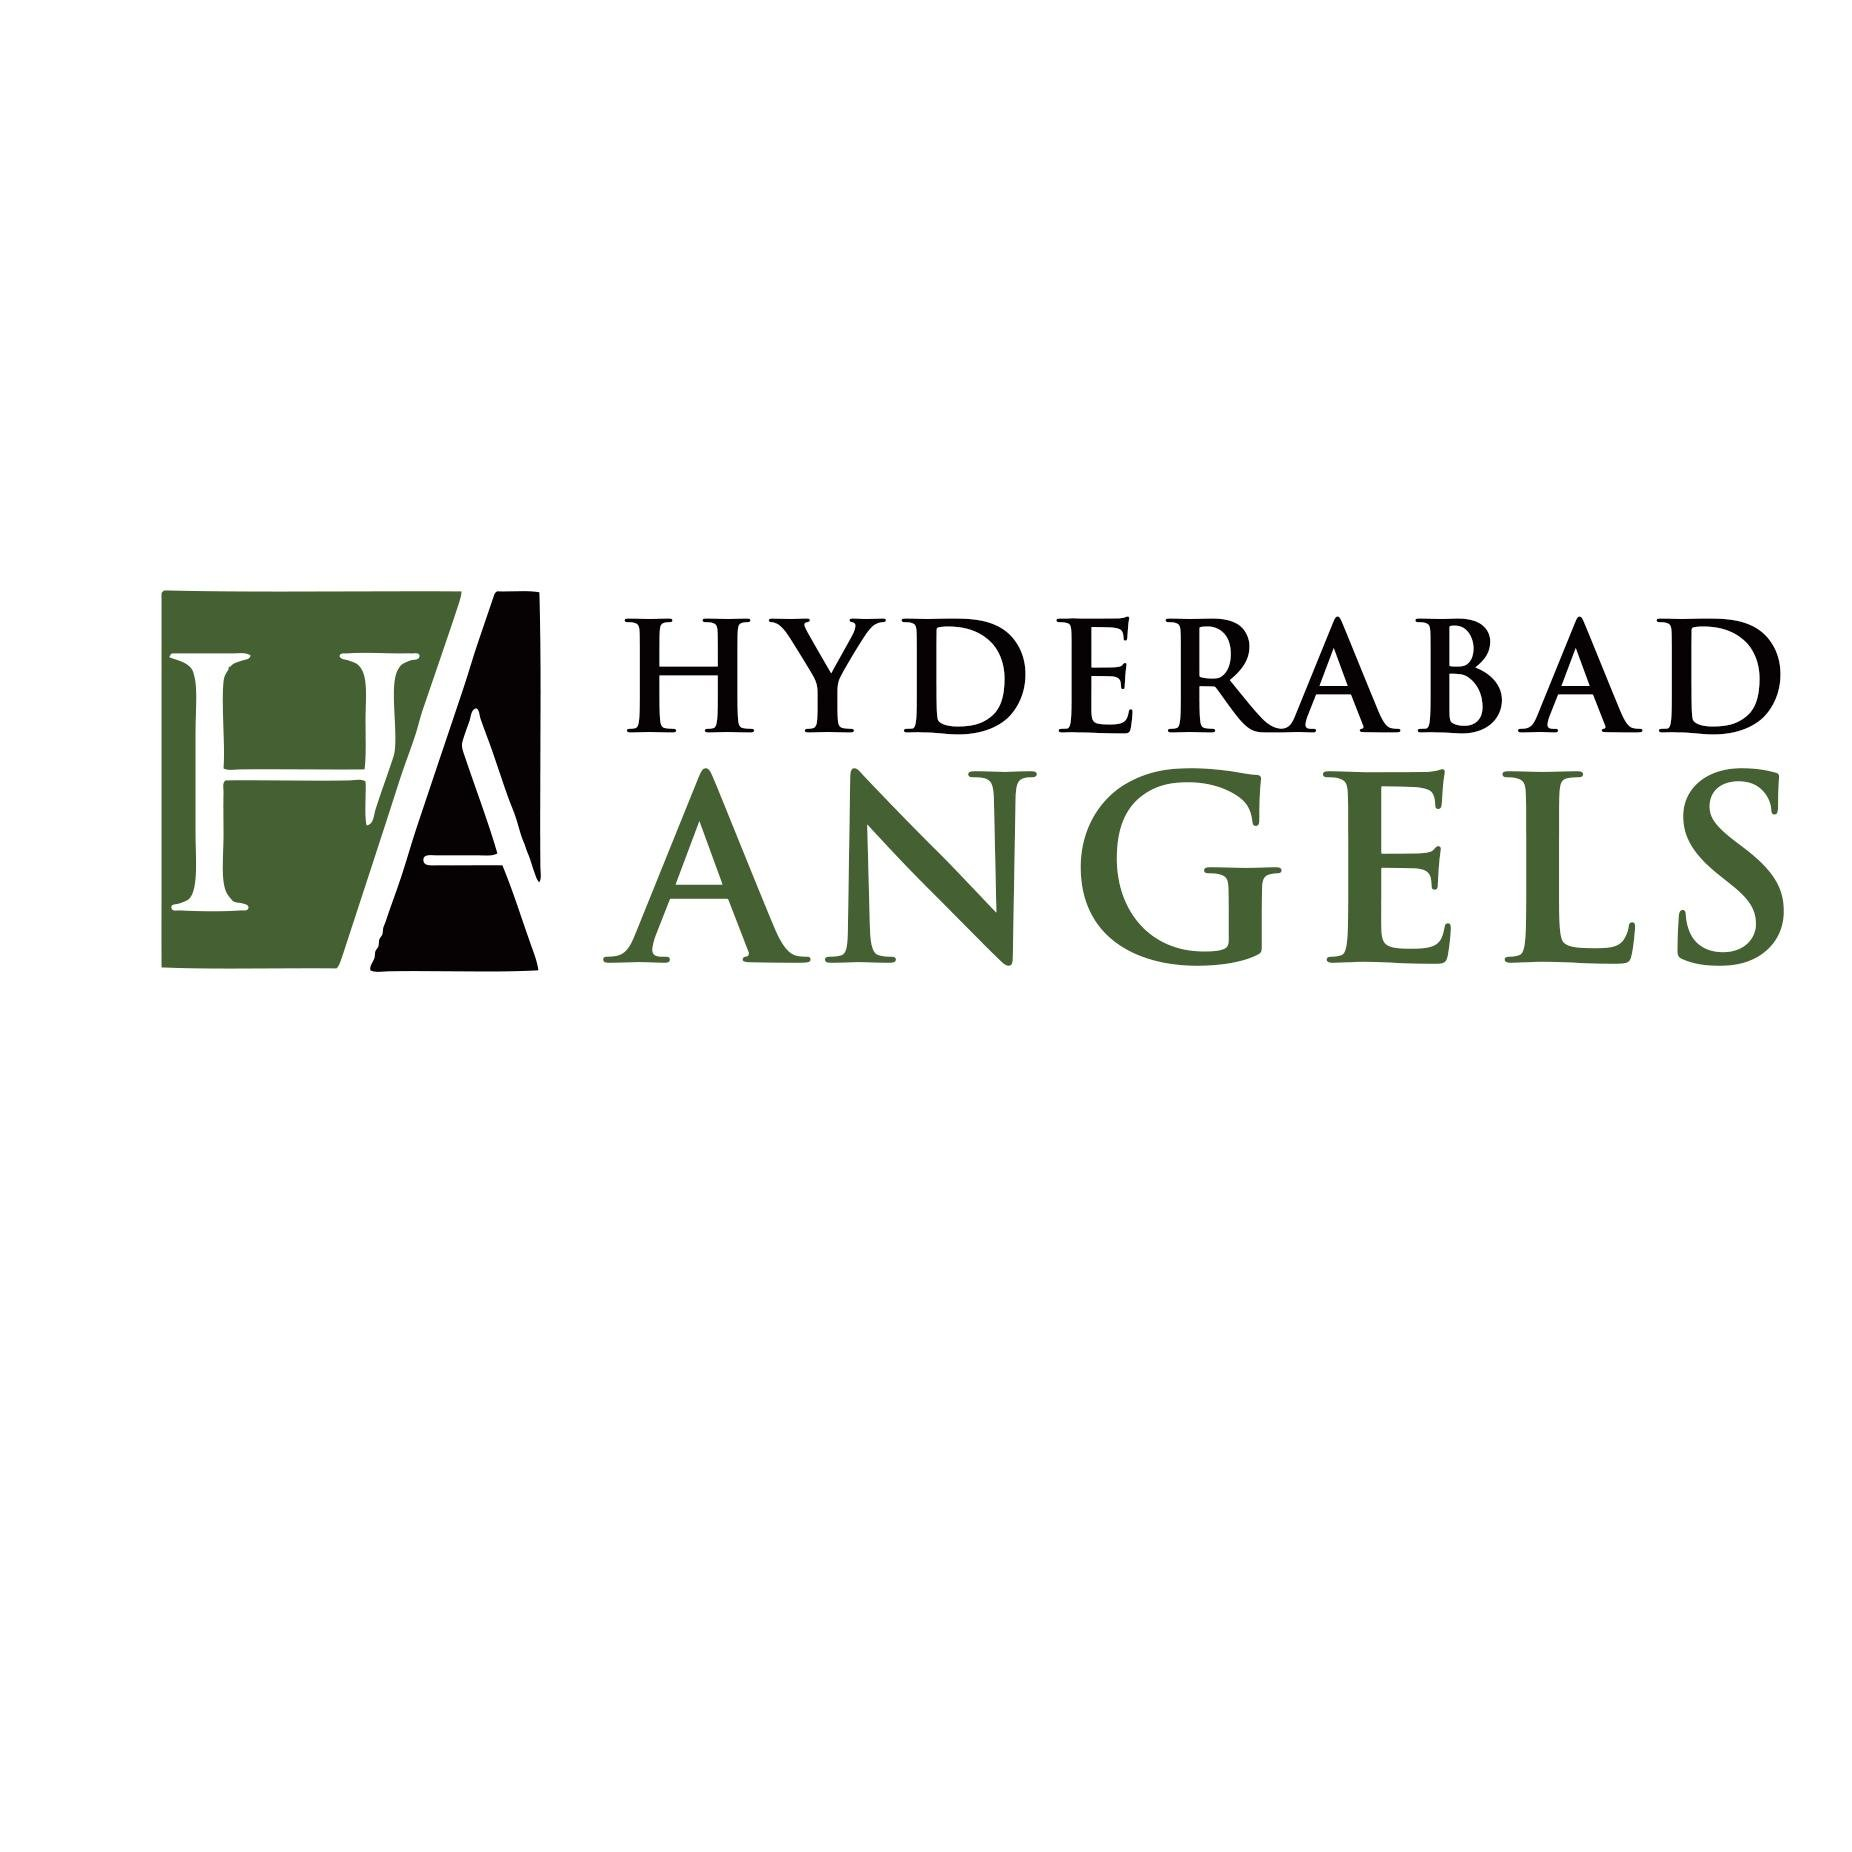 hyderabad-angels-1